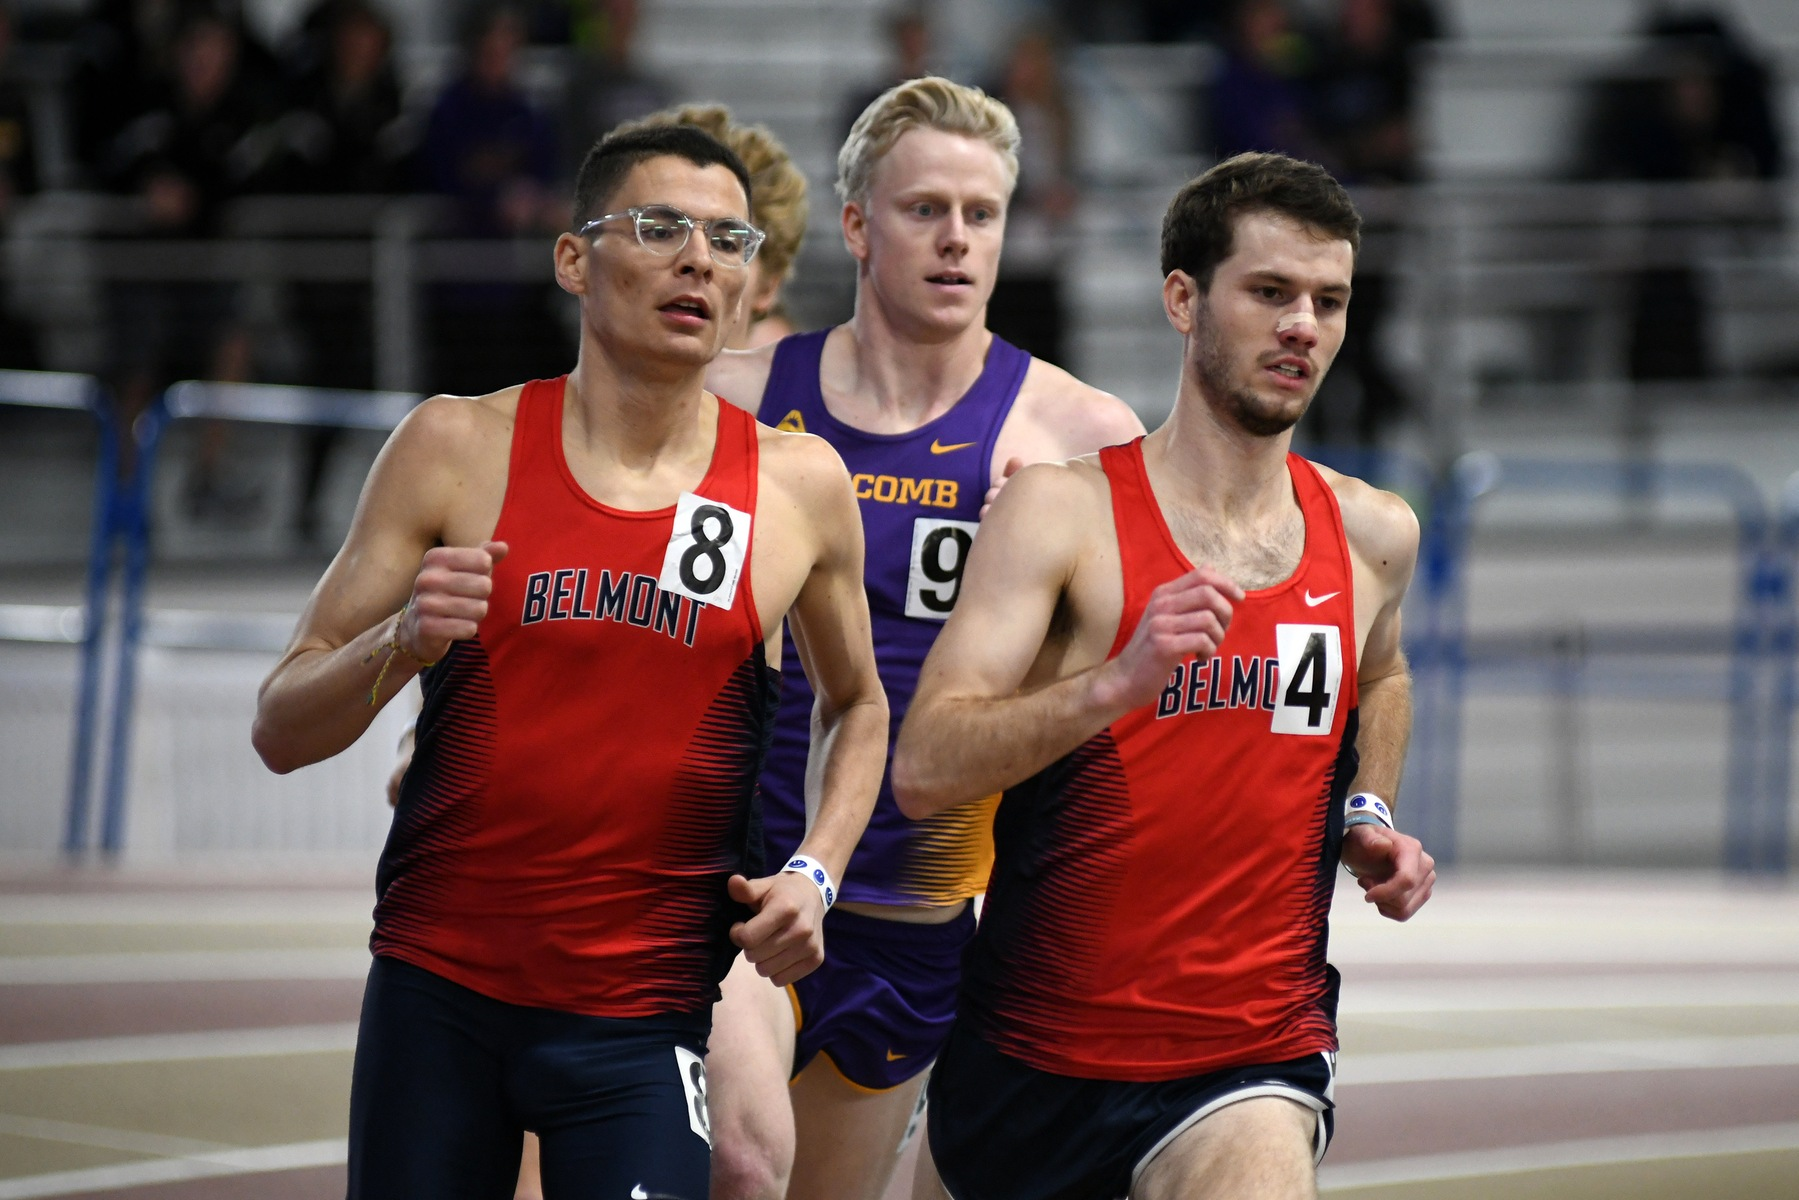 Men's OVC Track Championships: Day 2